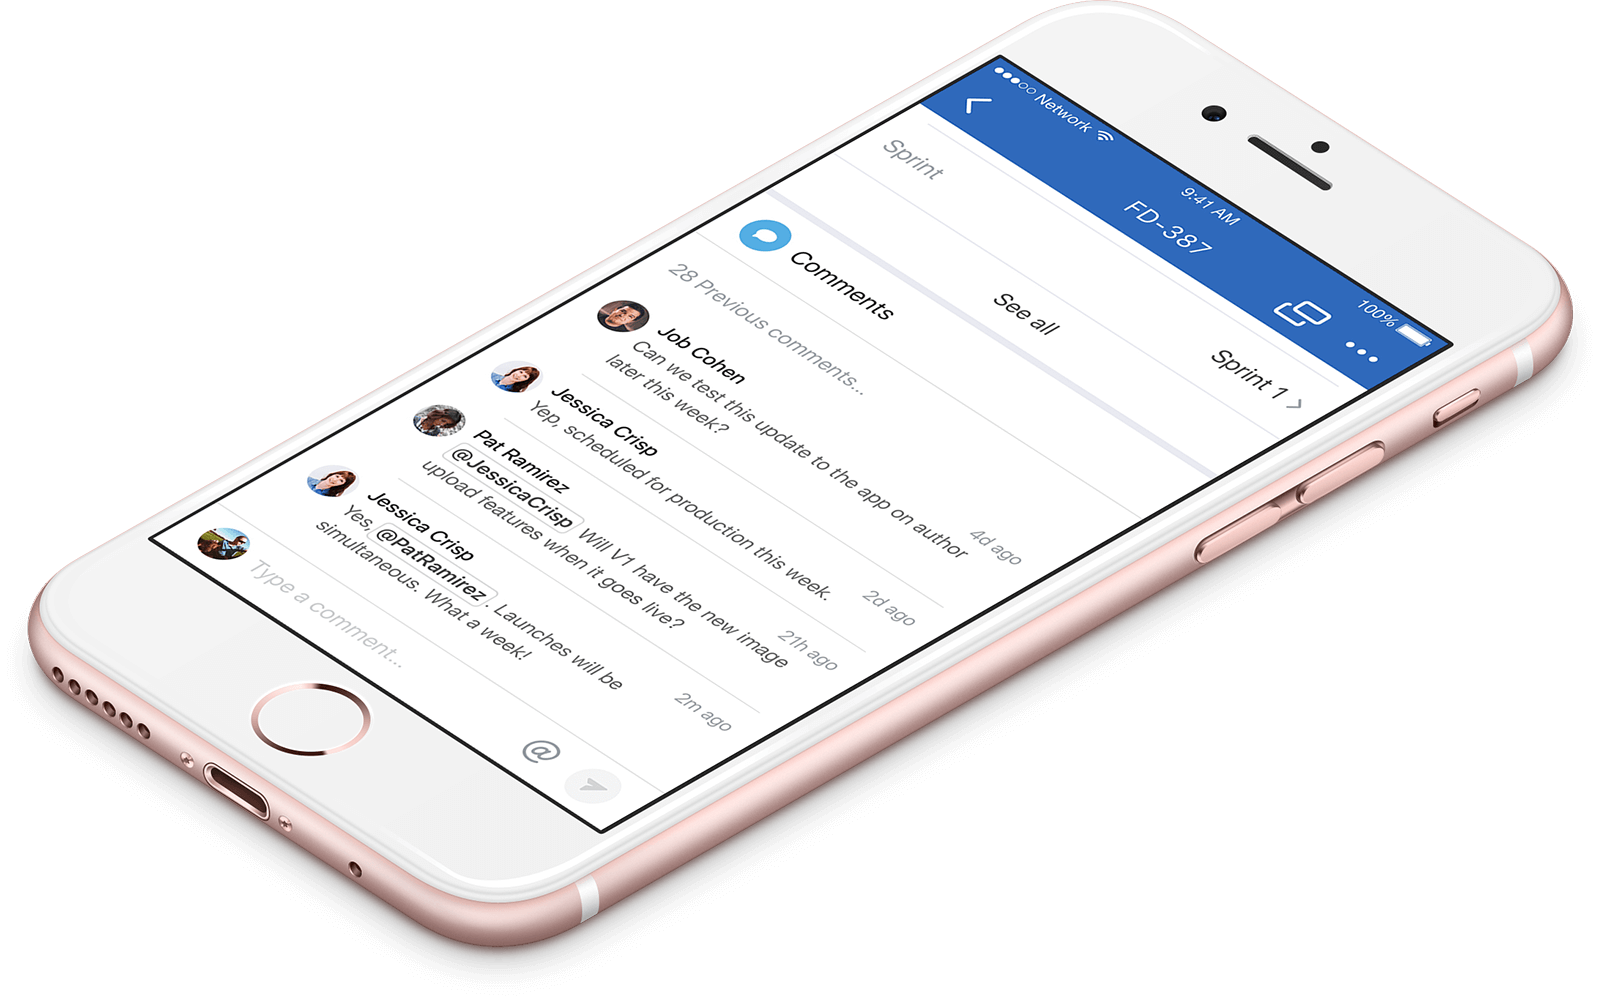 tool-management-project-jira-software-iphone